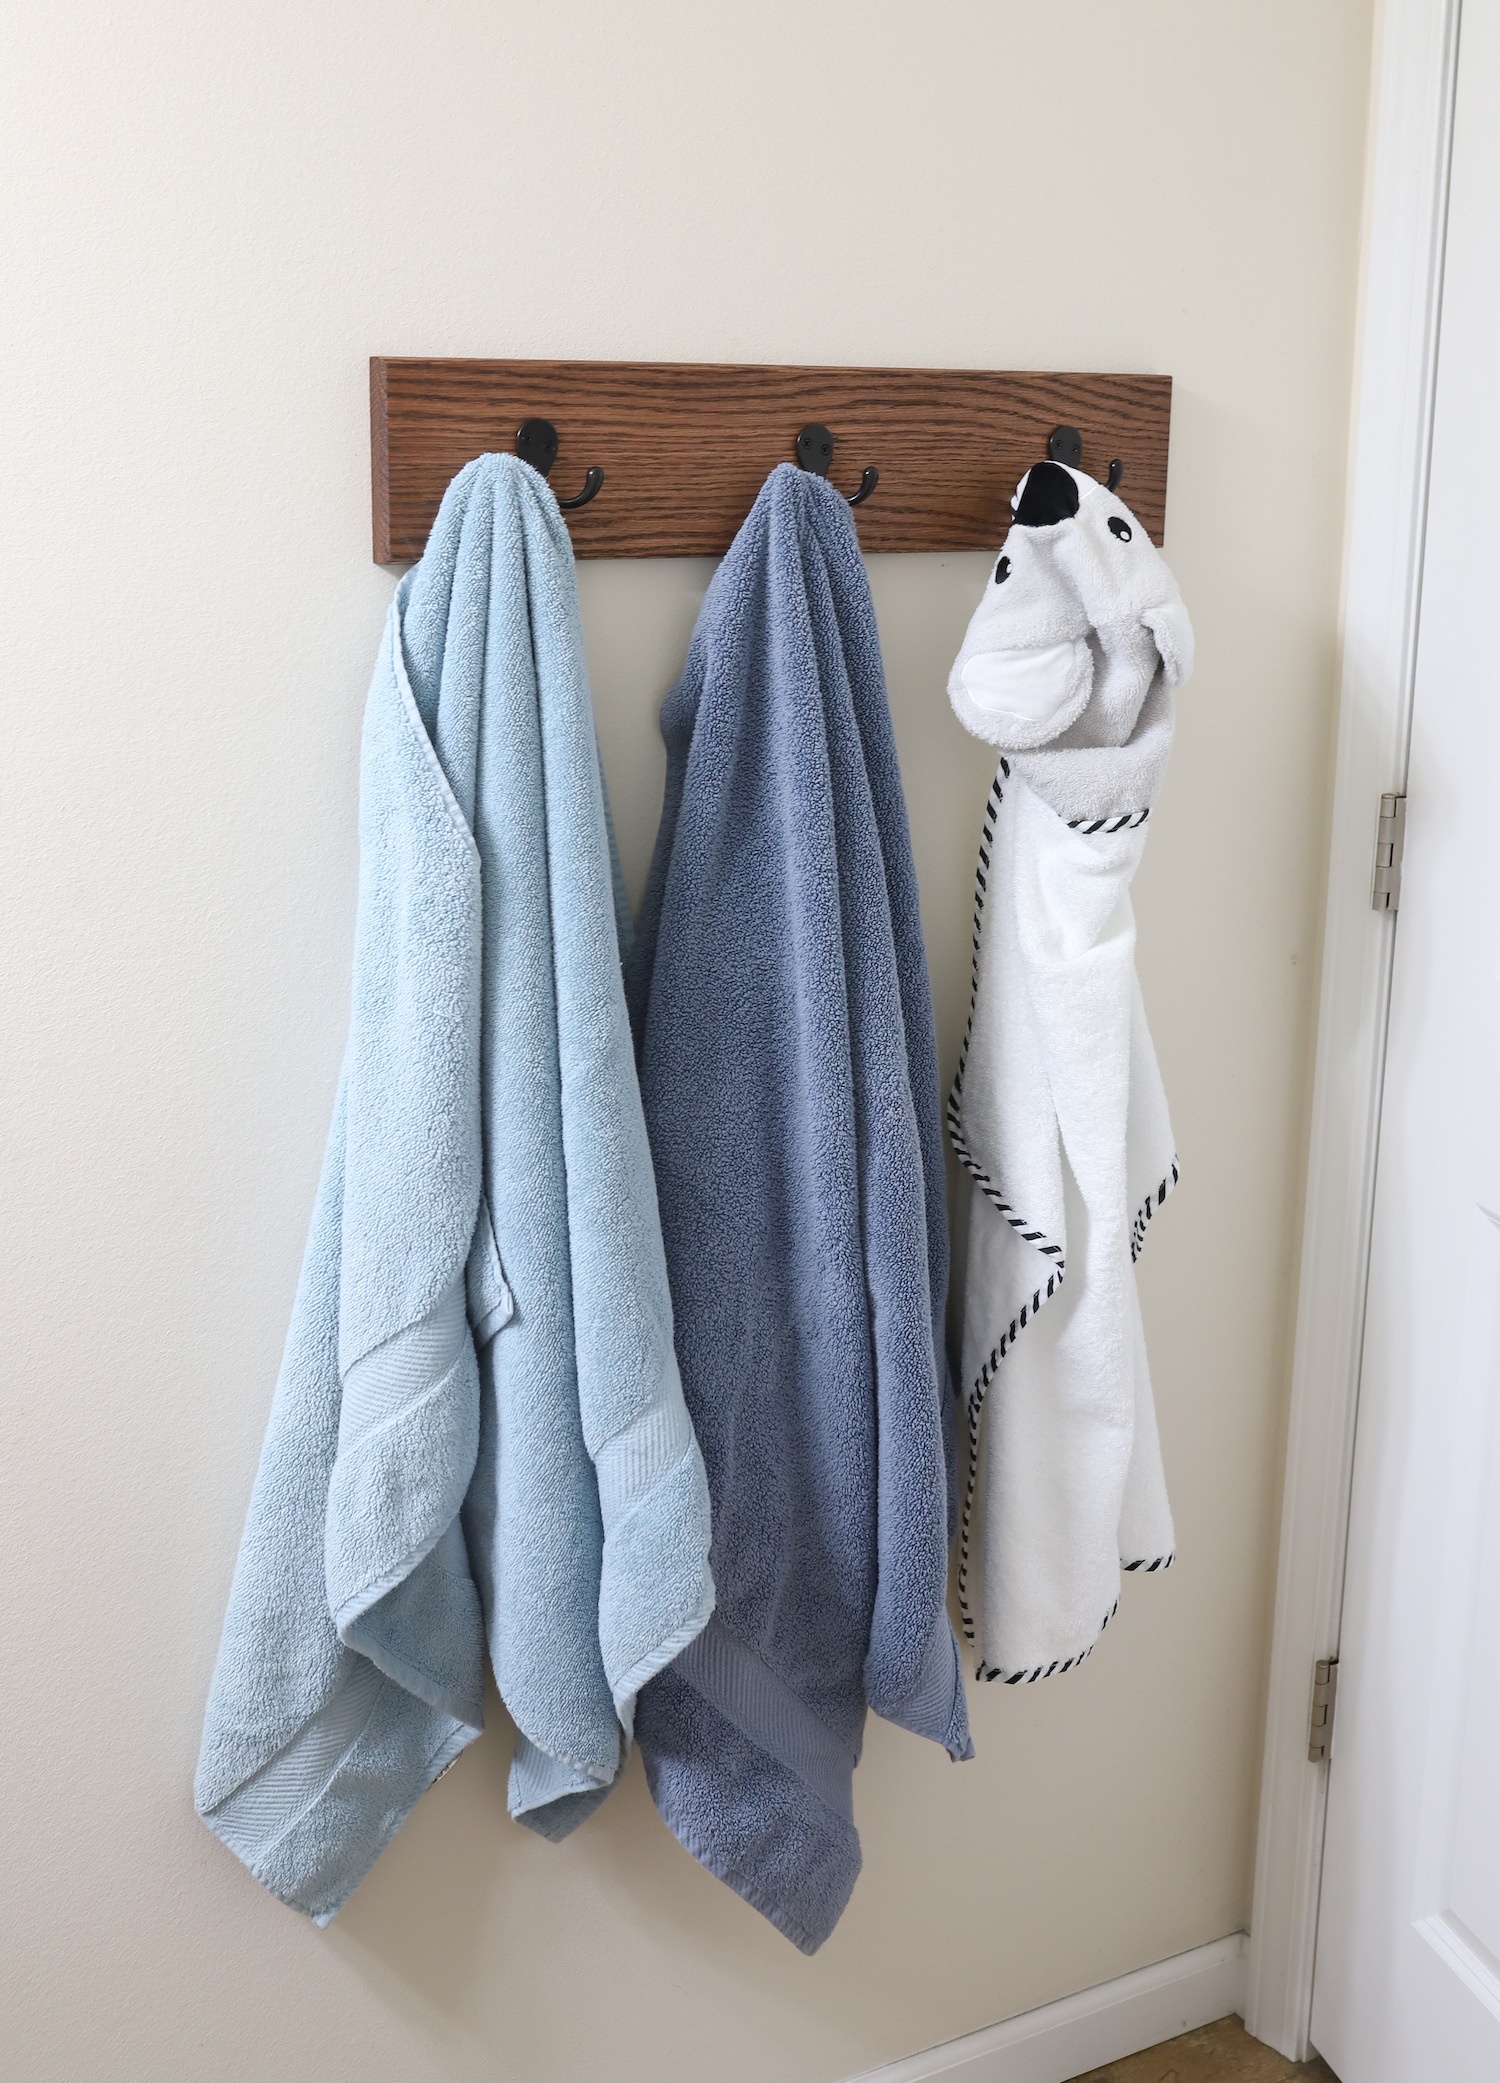 An easy bathroom refresh and what NOT to put down your drains! See how we updated our boys' bathroom with a few simple changes and additions!